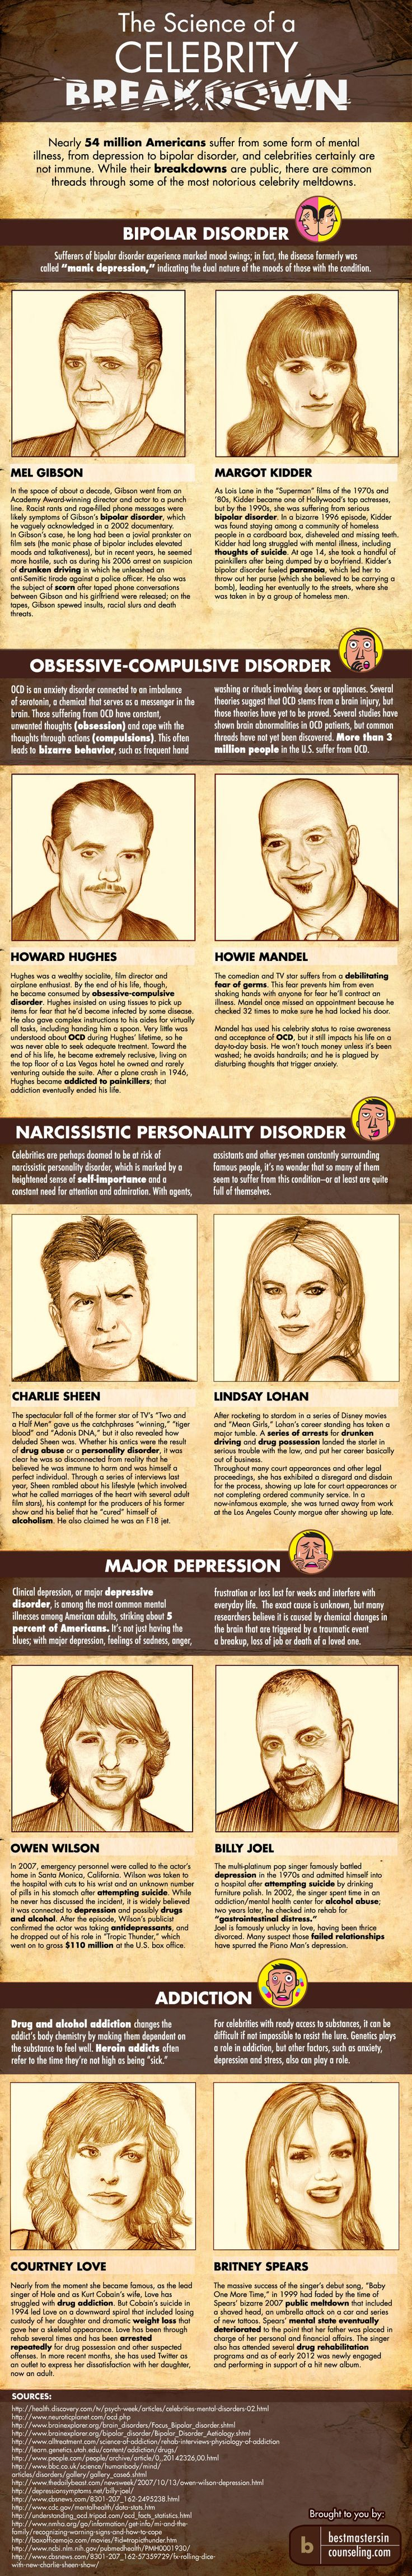 2 celebrities in each category are profiled: bipolar disorder, obsessive-compulsive disorder, narcissistic personality disorder, major depression and addiction.